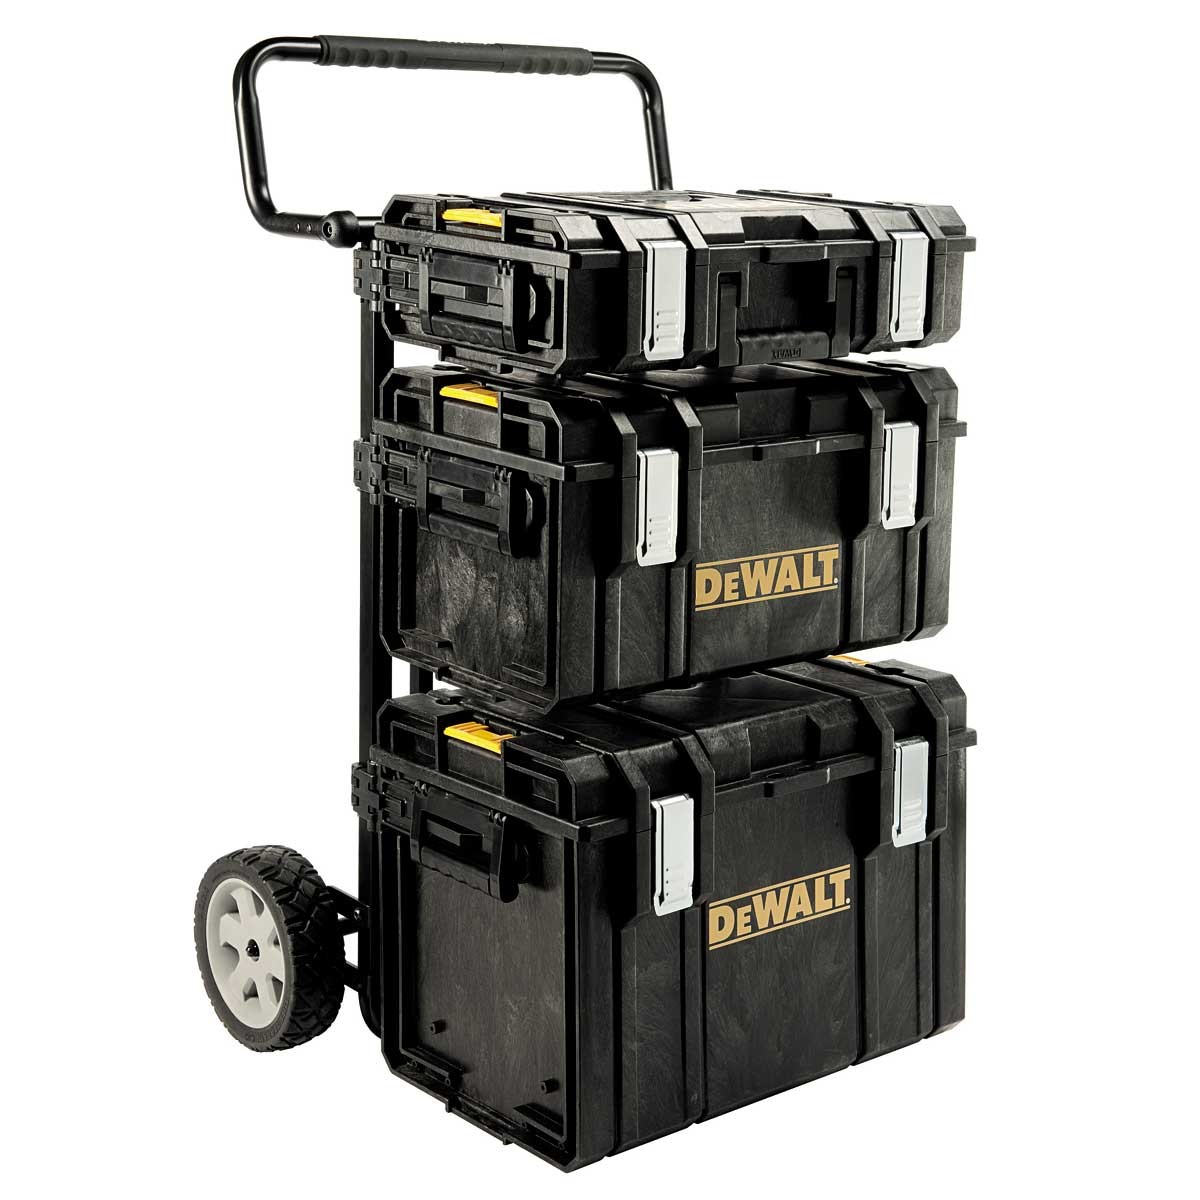 DeWalt 1-70-349 TOUGHSYSTEM Full System inc 3x Cases & Trolley